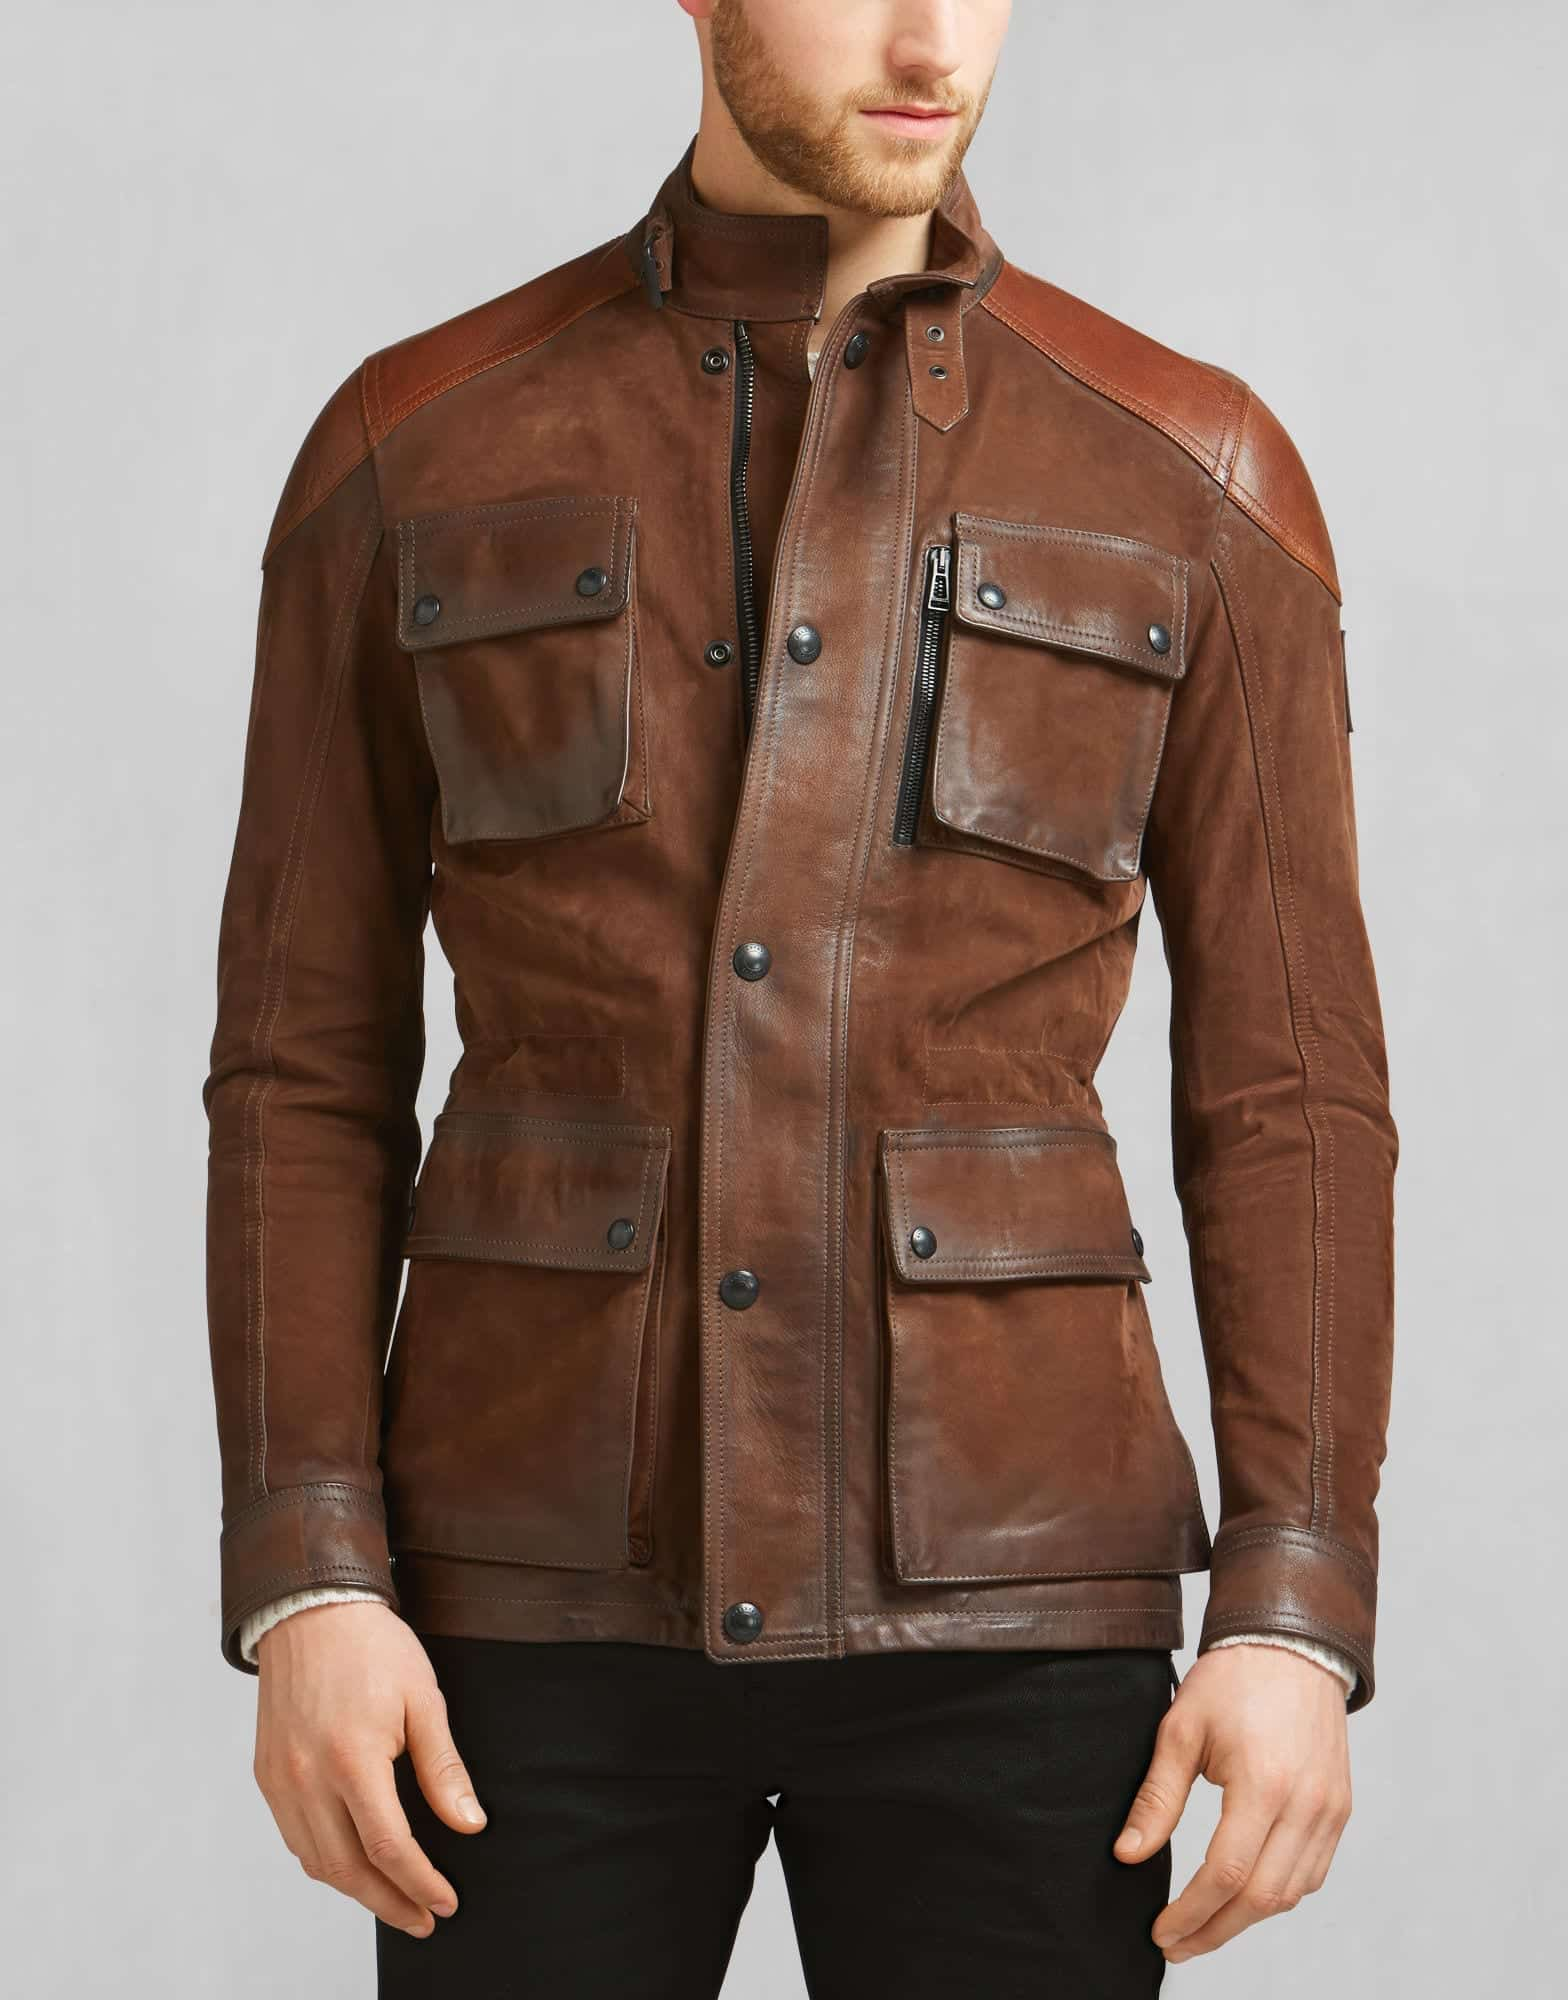 Top Brands for Leather Jackets-15 Most Popular Brands 2018 ...